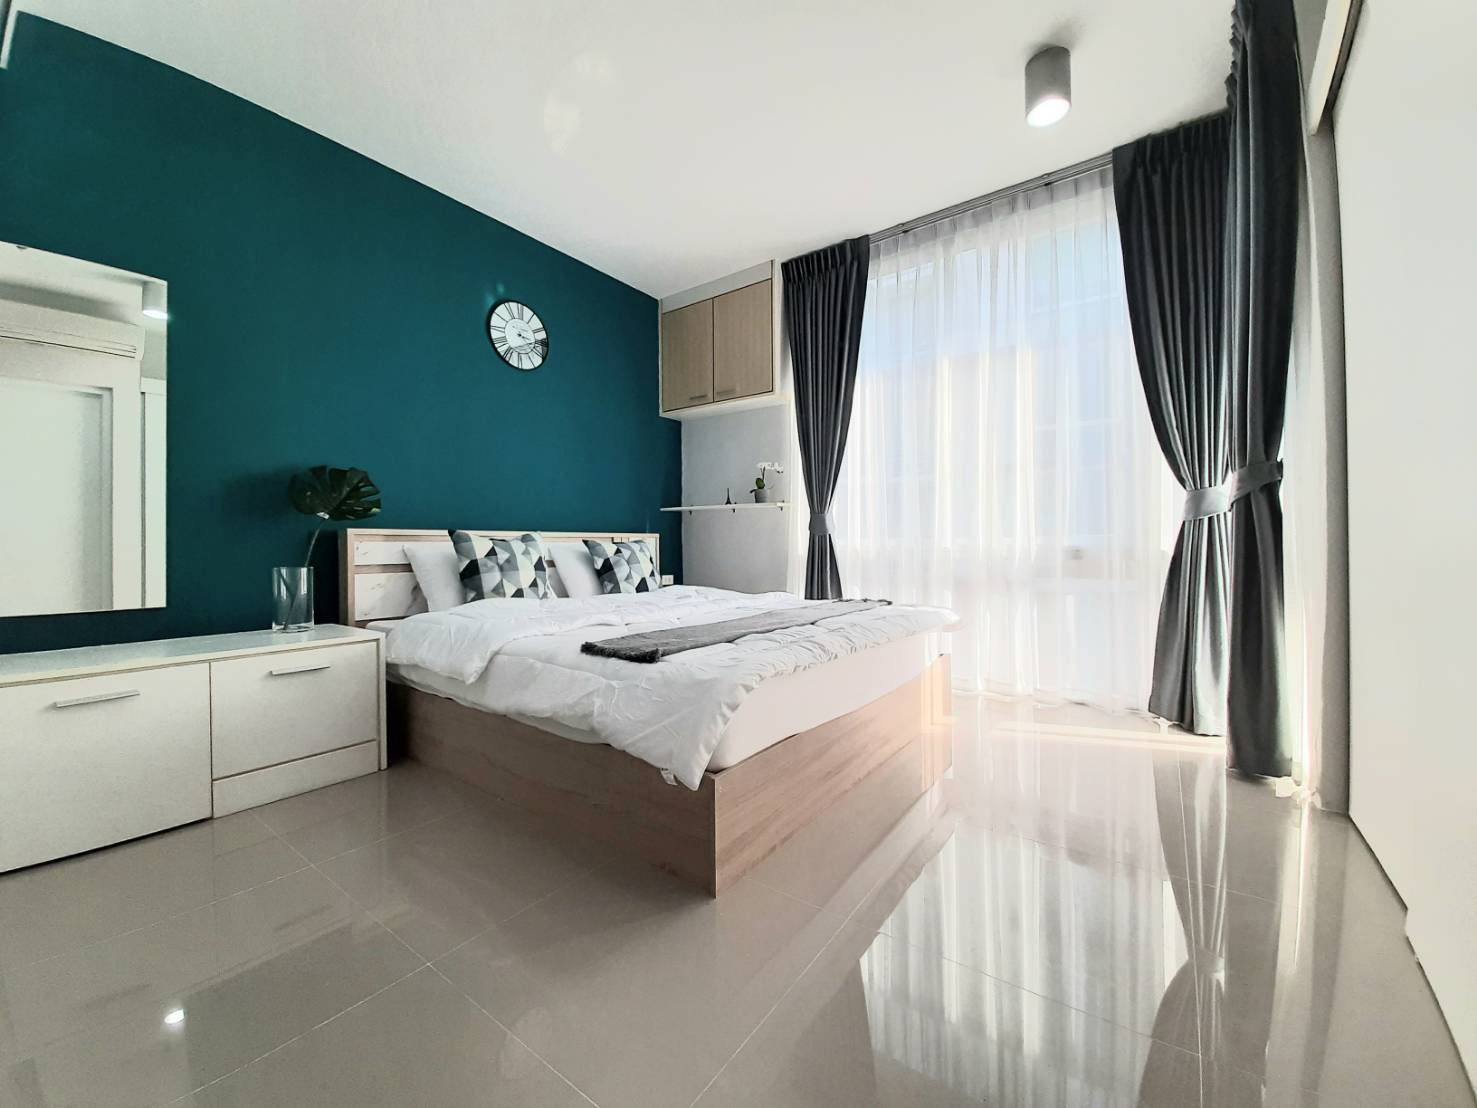 For SaleCondoPattanakan, Srinakarin : For Sale Condo The Iris Srinakarin, Building B, Floor 5, Pool View, beautiful room